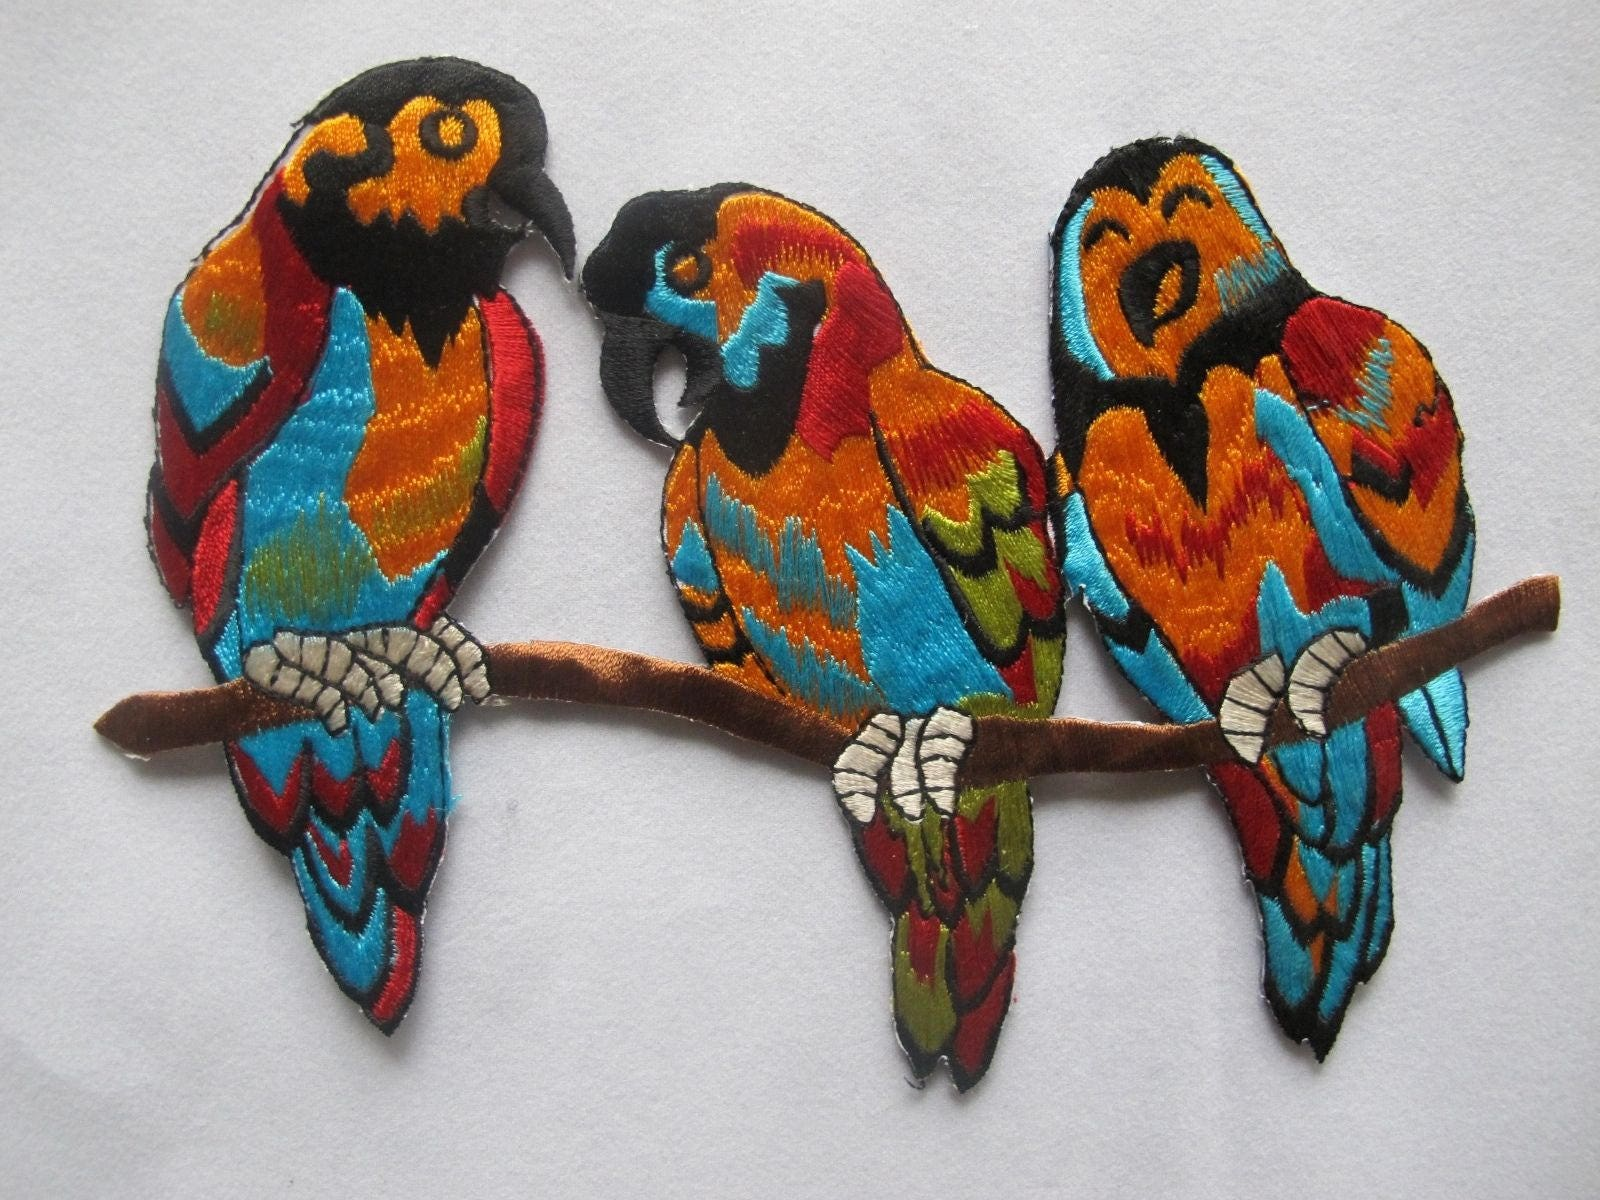 Embroidered patch macaw parrot bird iron on sew on applique from